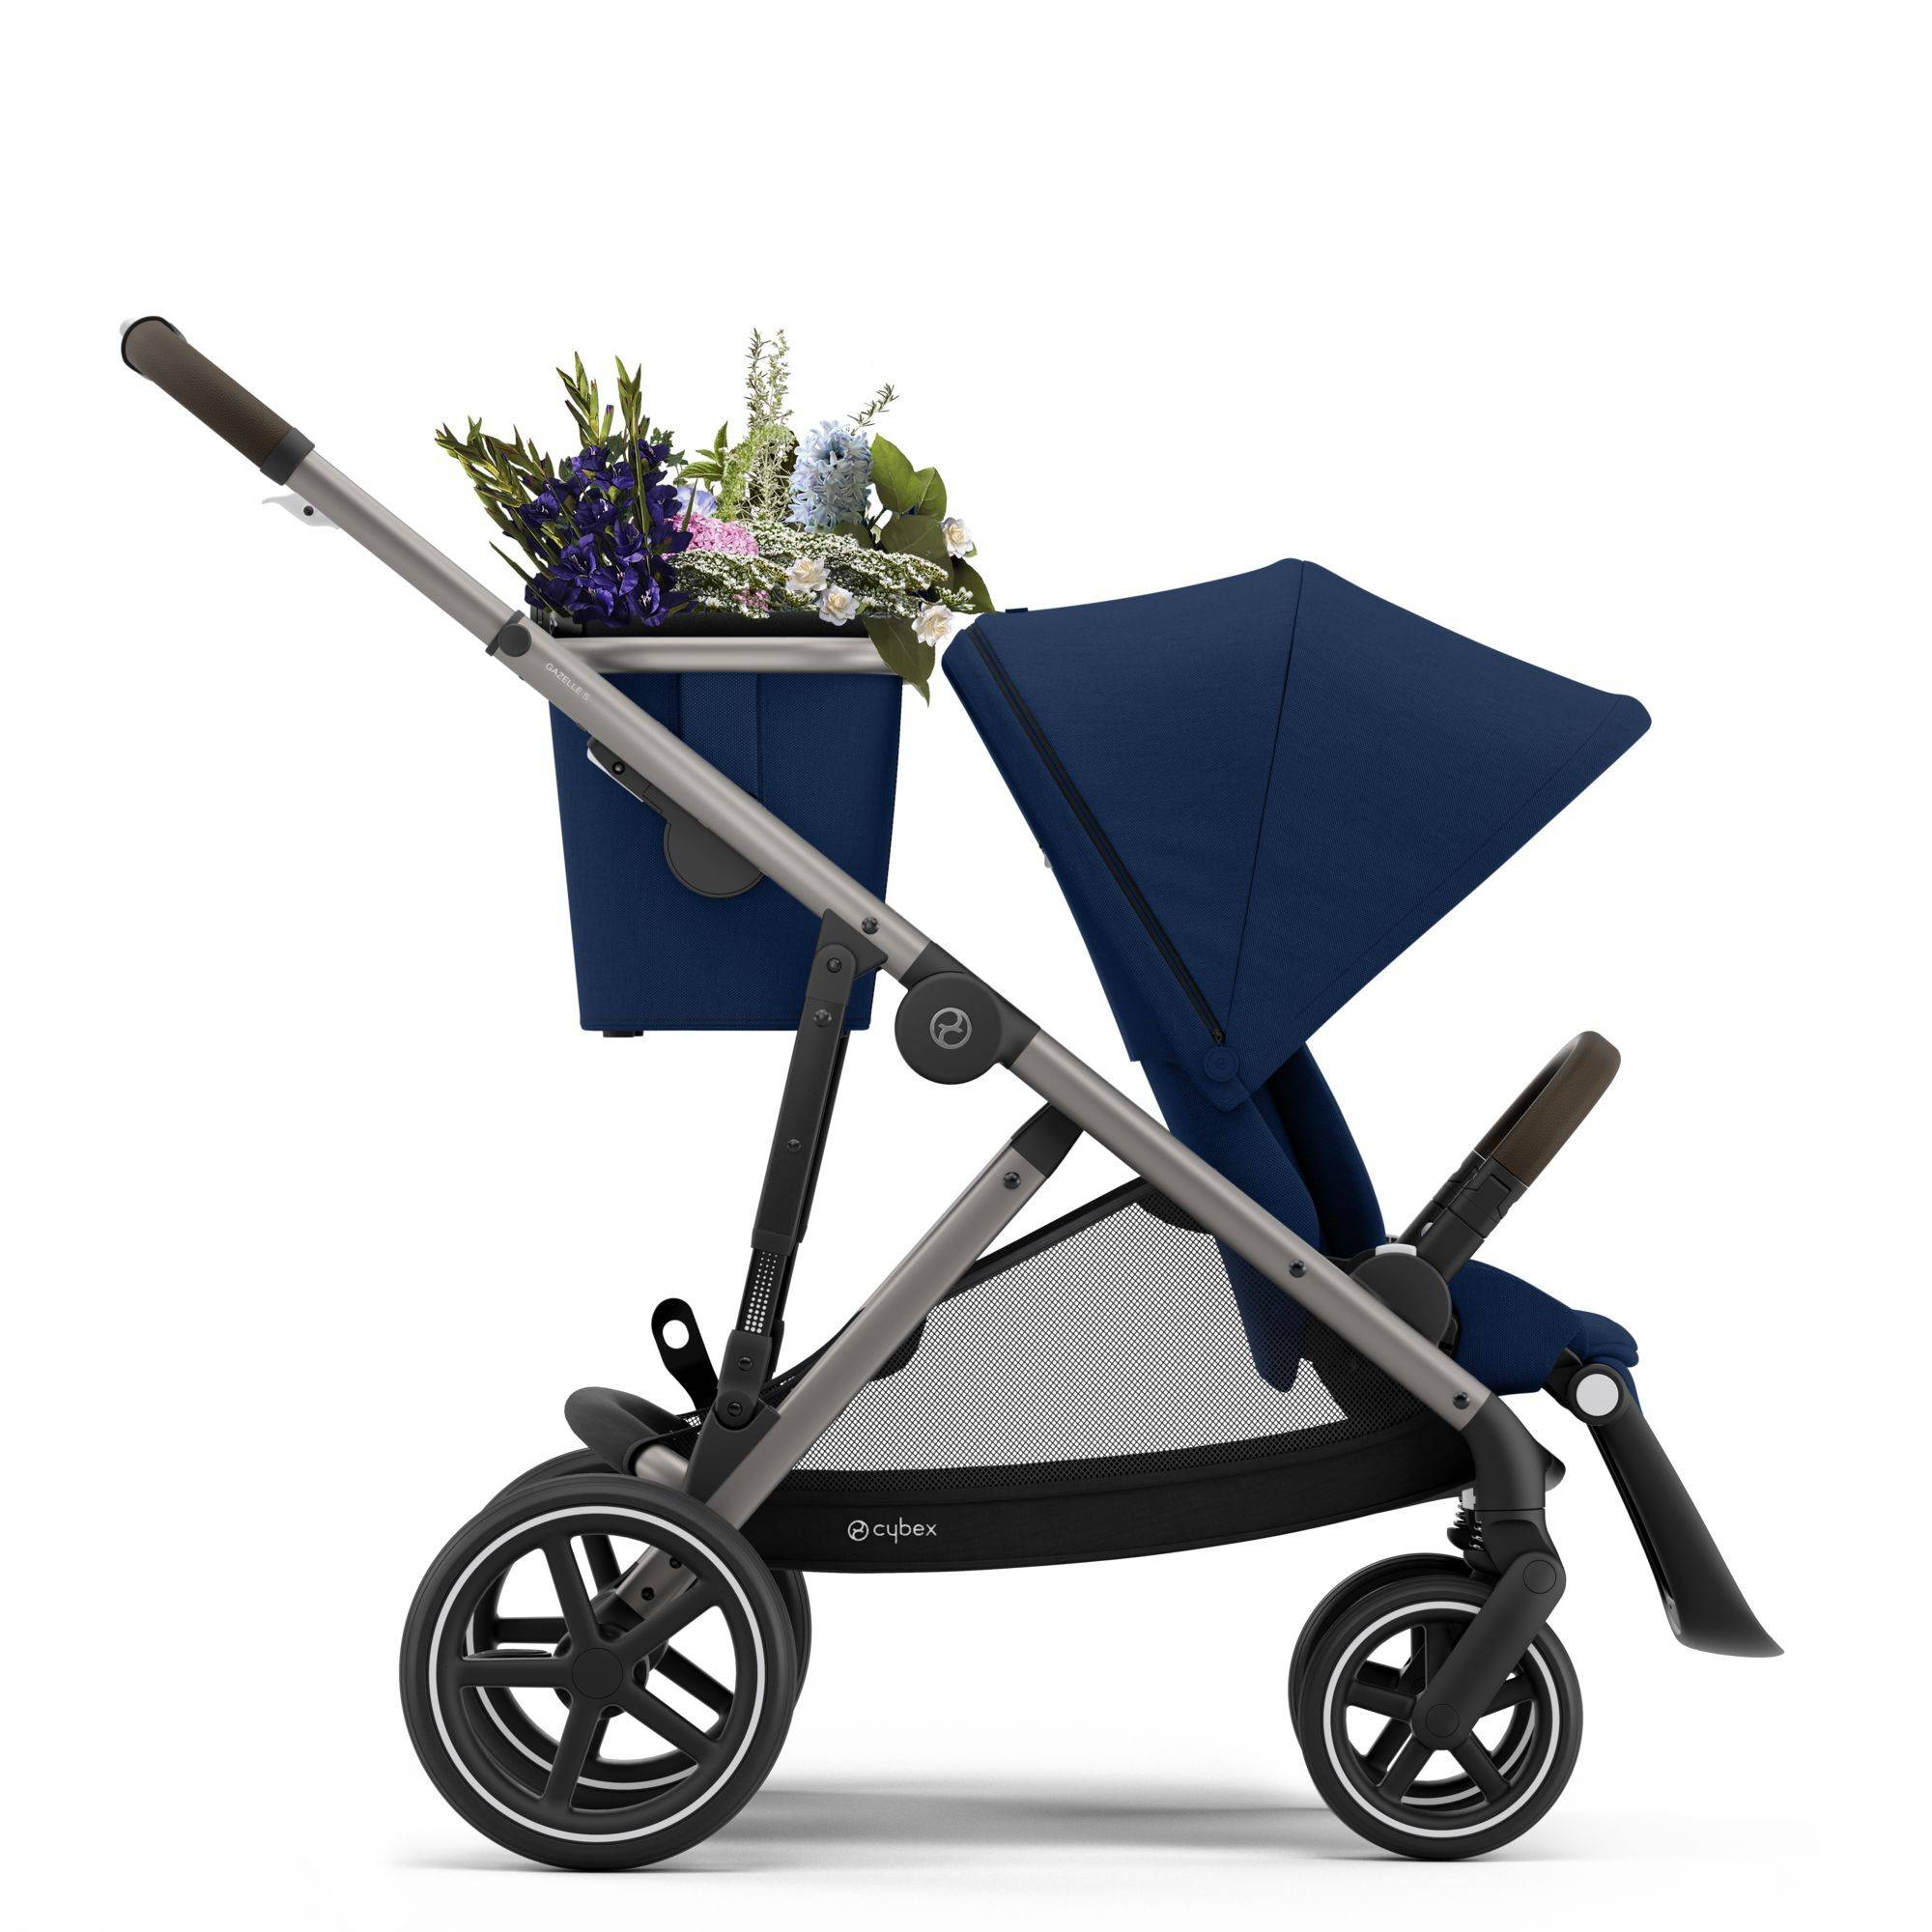 the Cybex Gazelle S stroller with top basket, flowers in basket, shop Kidsland